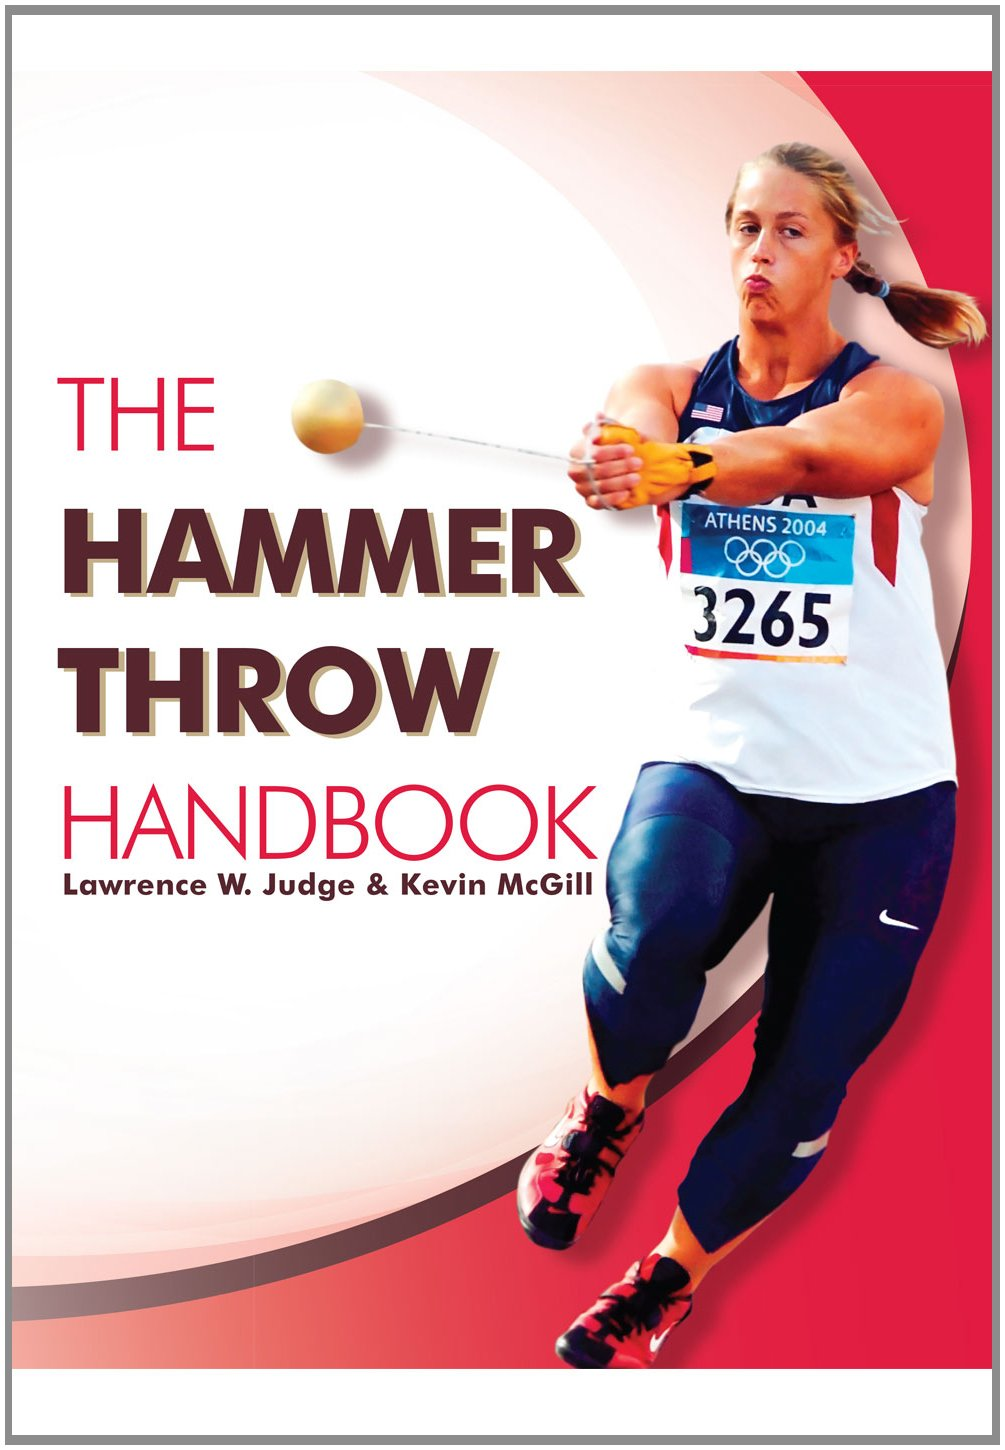 Hammer Throw Handbook Larry Judge